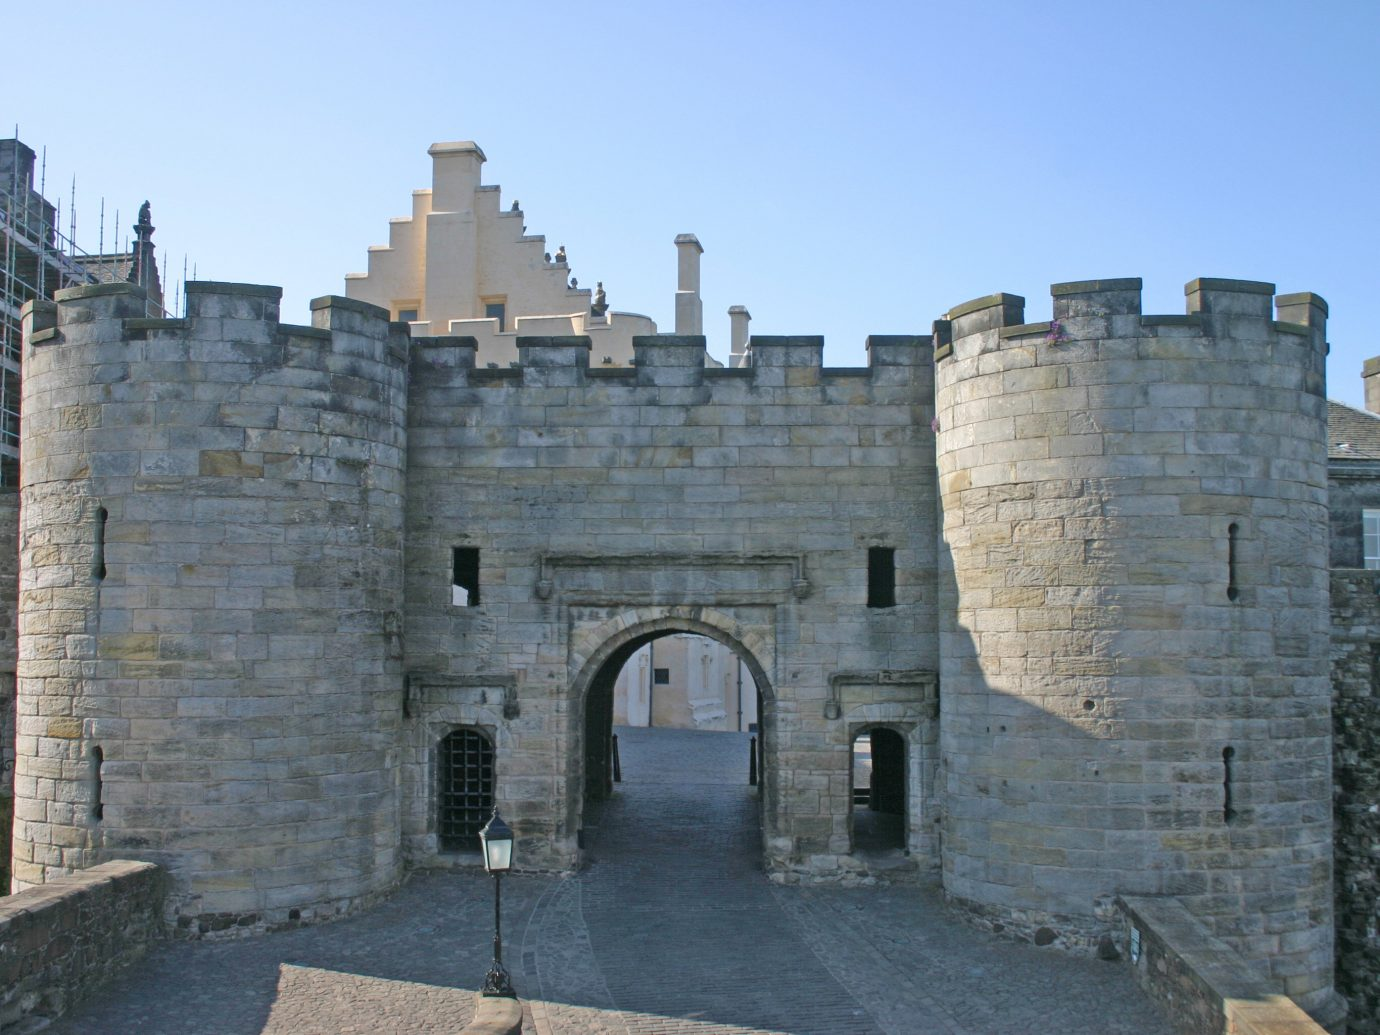 Landmarks Offbeat building outdoor sky stone fortification historic site wall medieval architecture castle history old château turret facade concrete cement